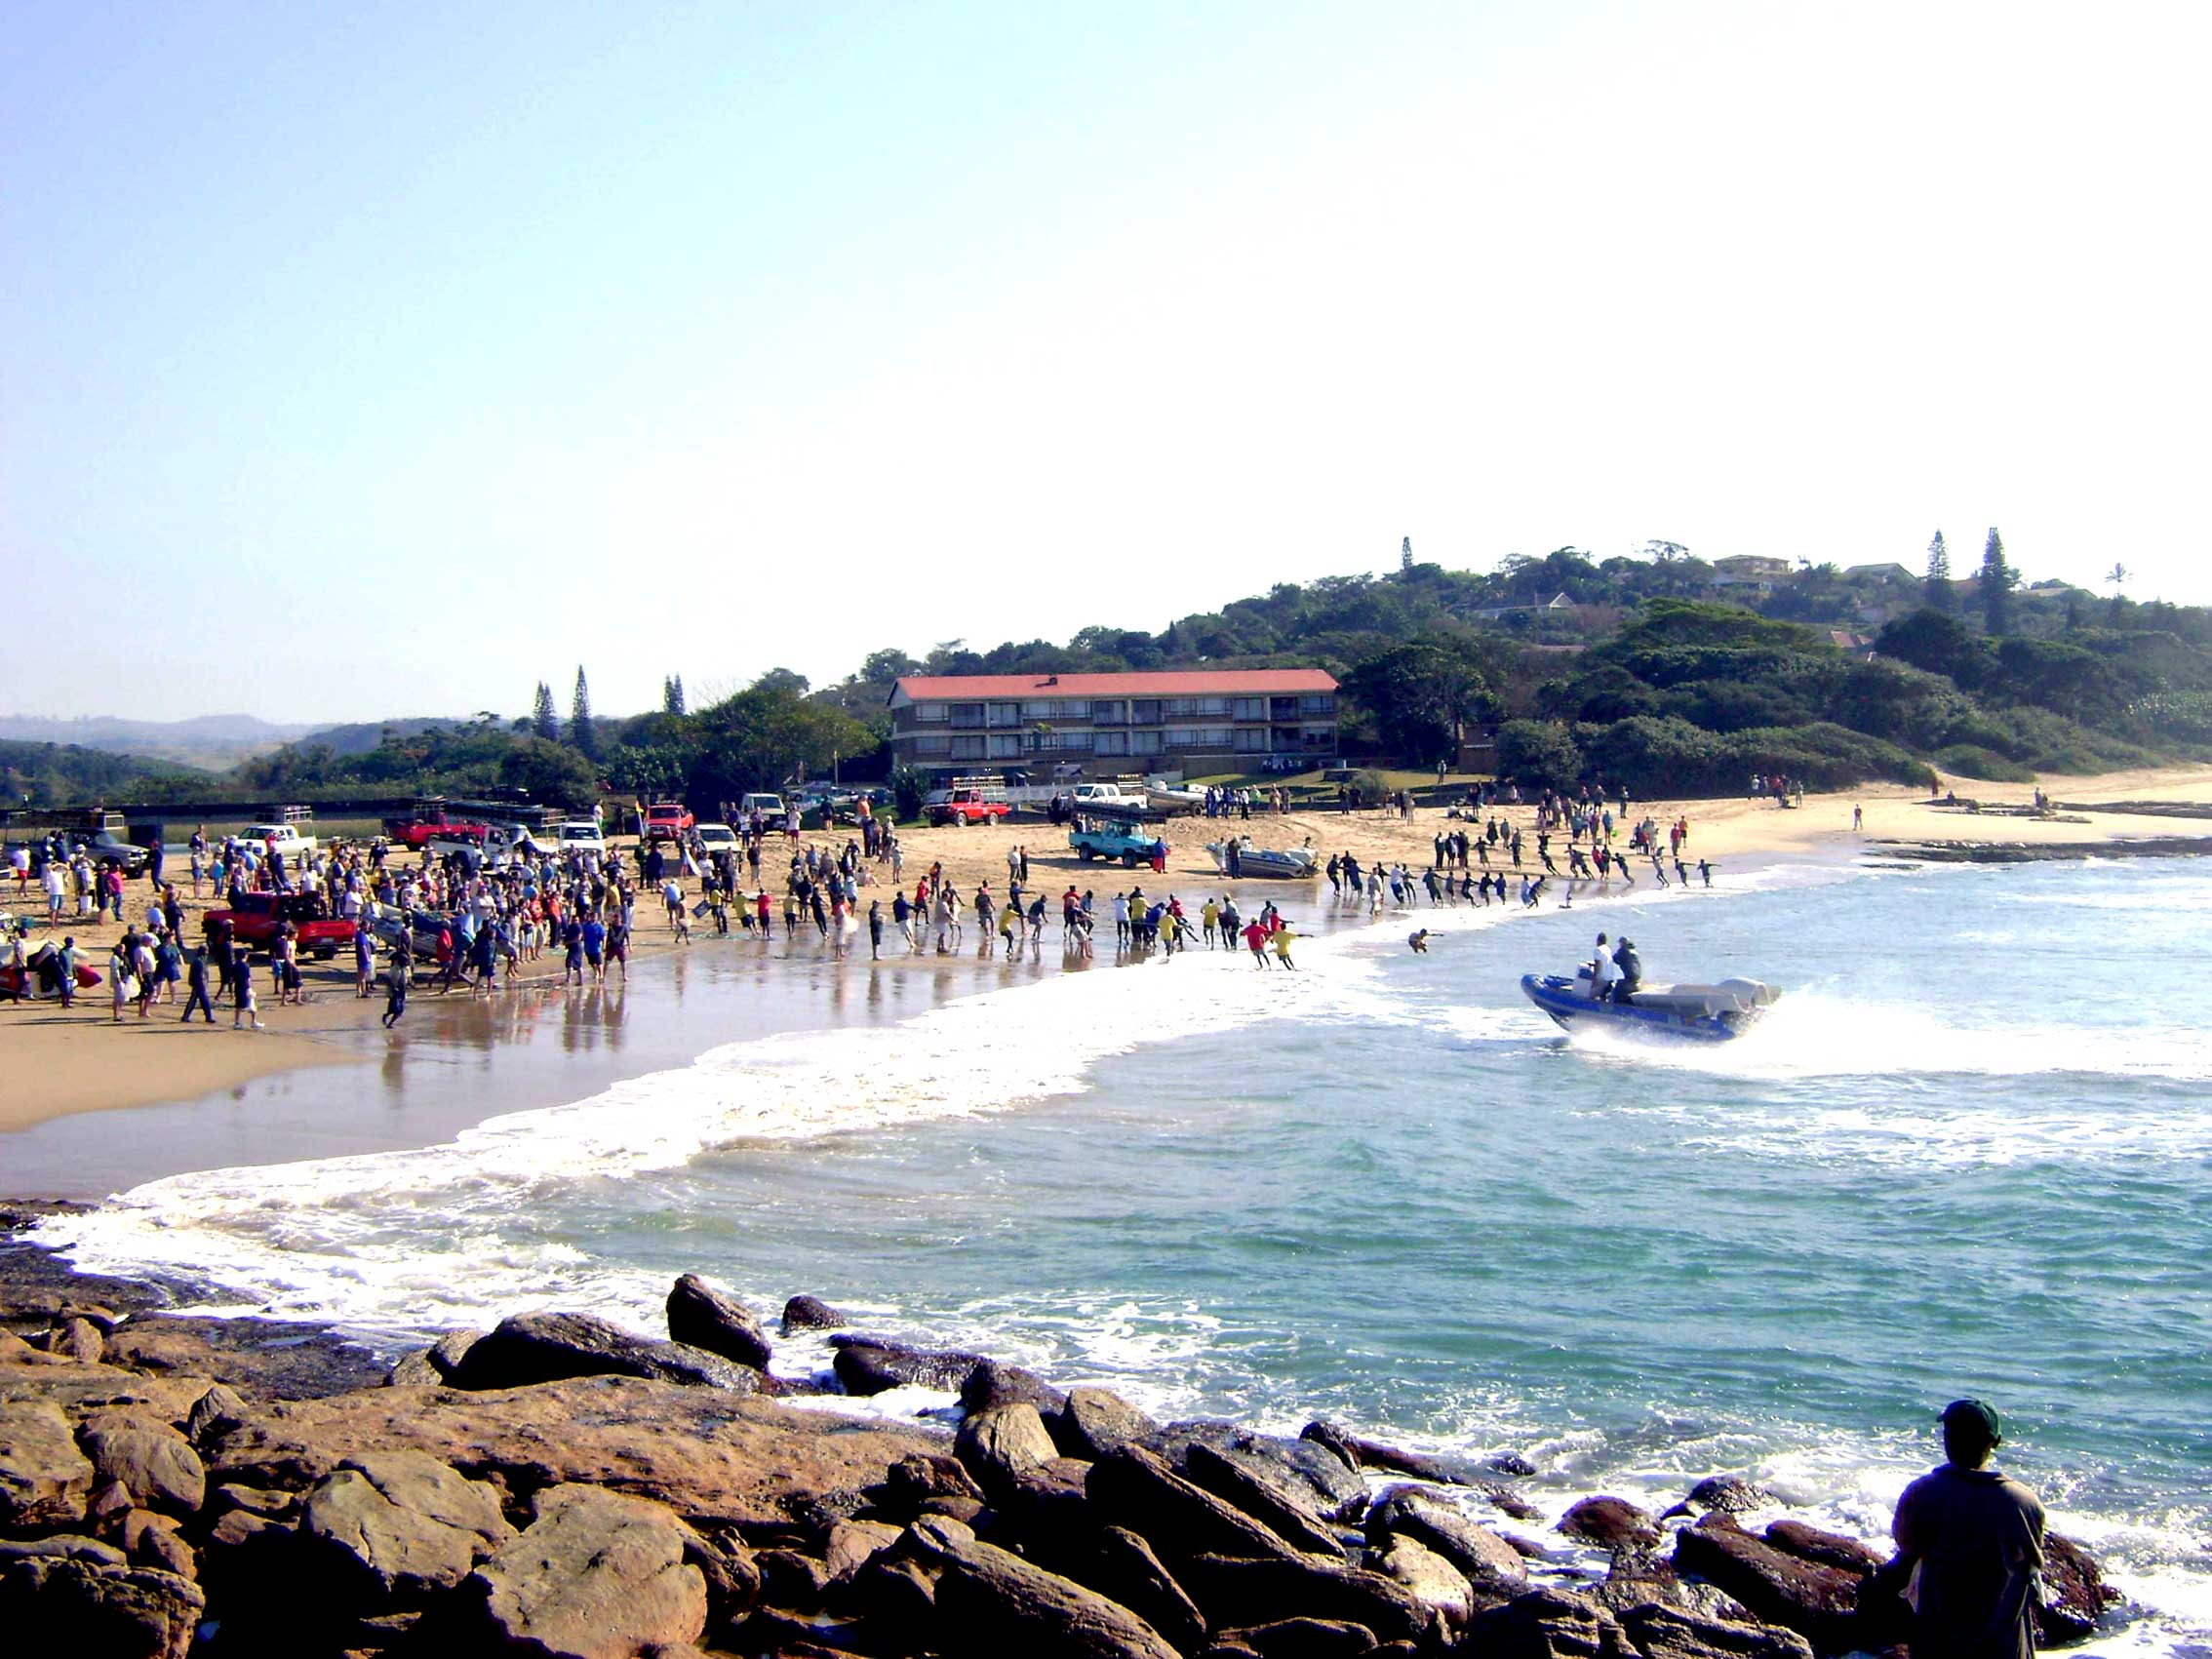 Sardine netting South Coast KZN South Africa -St Michaels Self Catering Holiday Accommodation